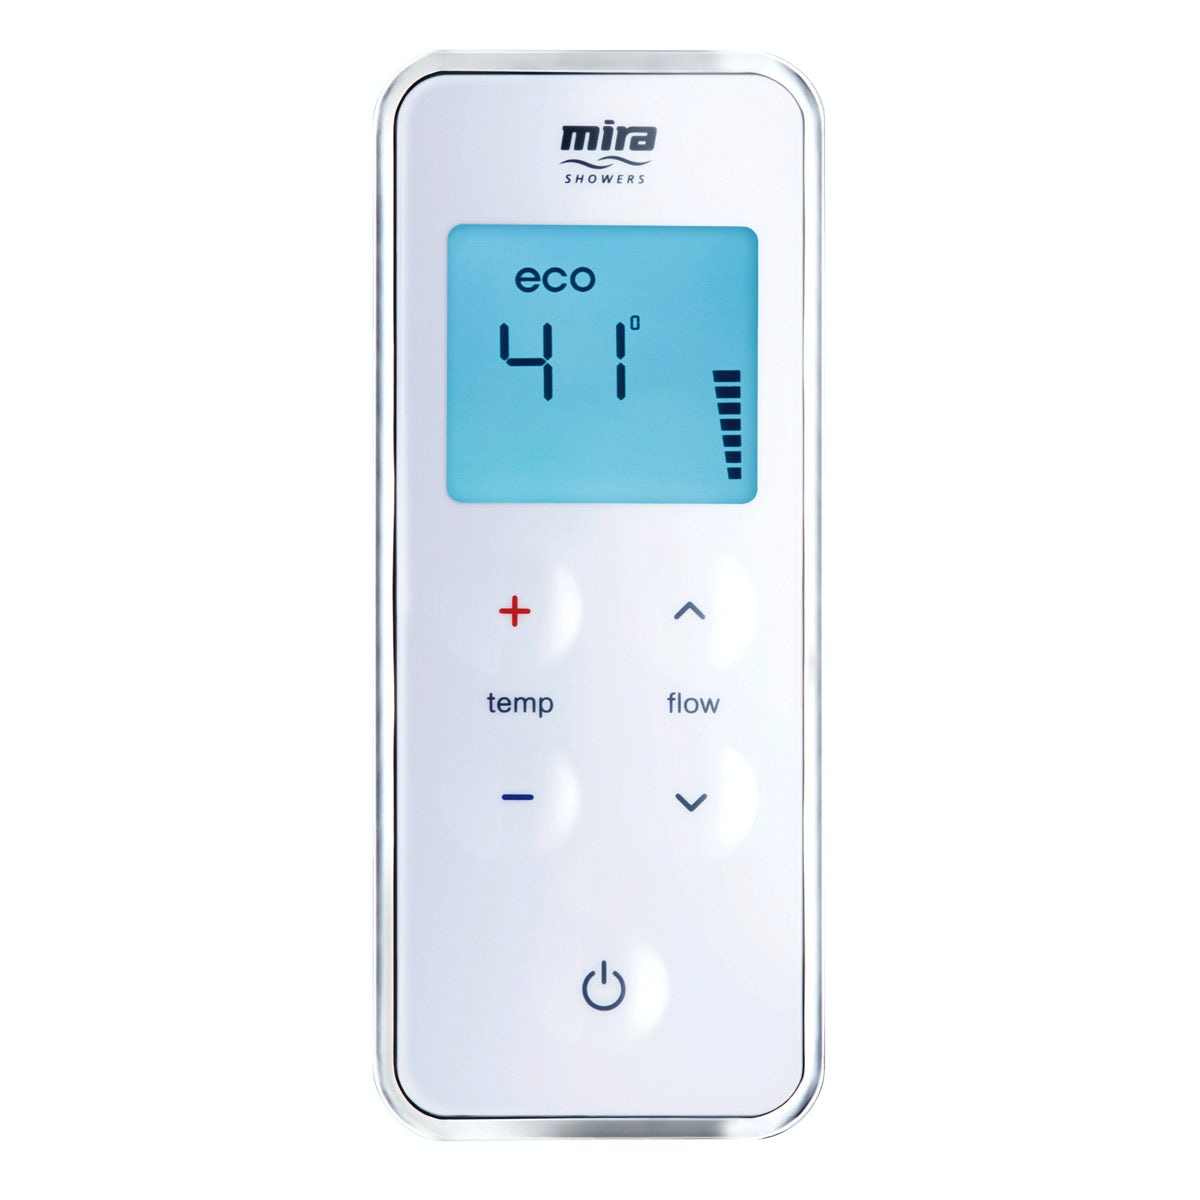 Mira Vision single wireless digital shower controller